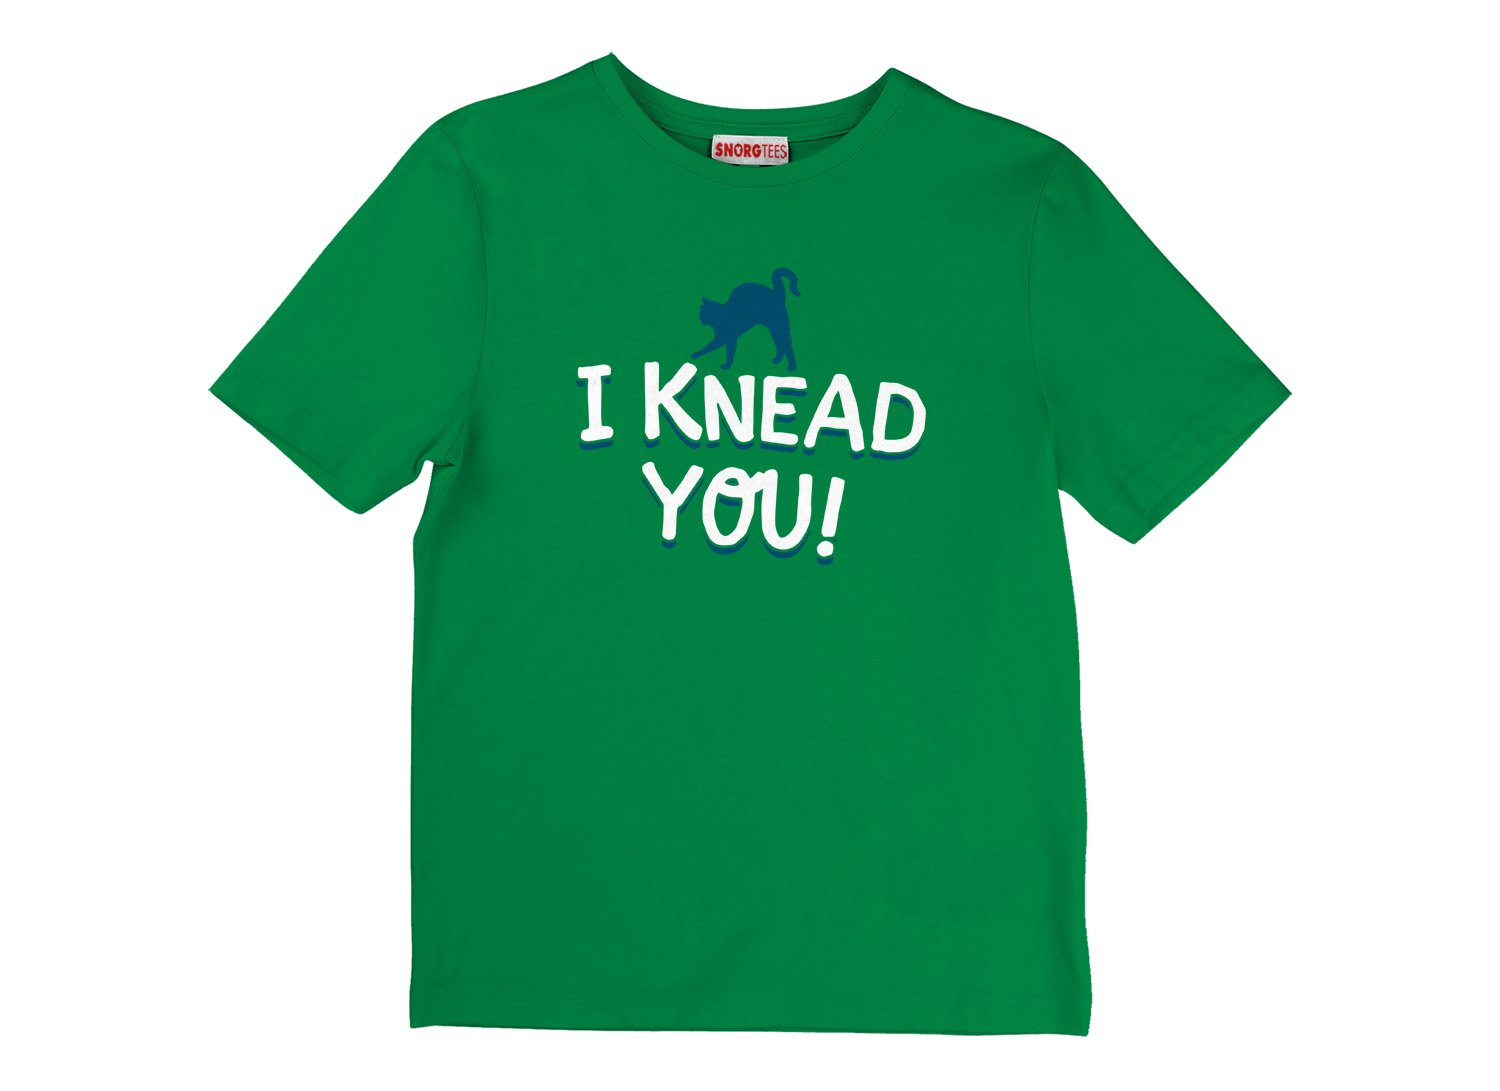 I Knead You on Kids T-Shirt